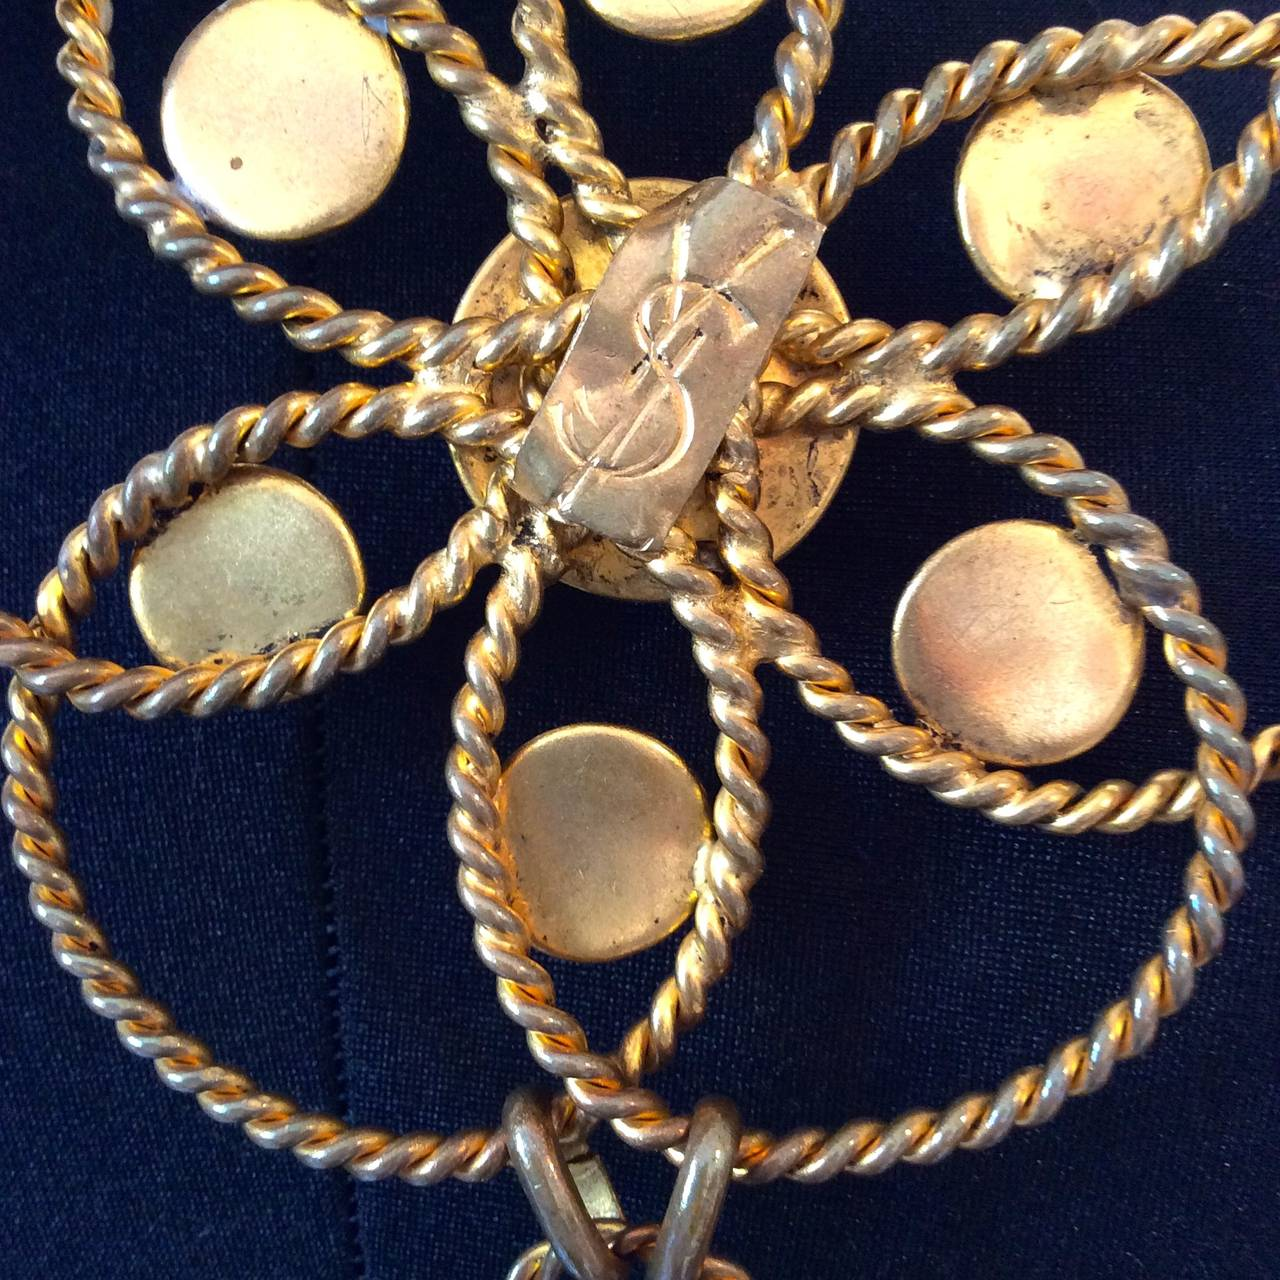 Rare 1970's YSL / Yves Saint Laurent Gold Tone Chain Belt with Cabachon stones 5